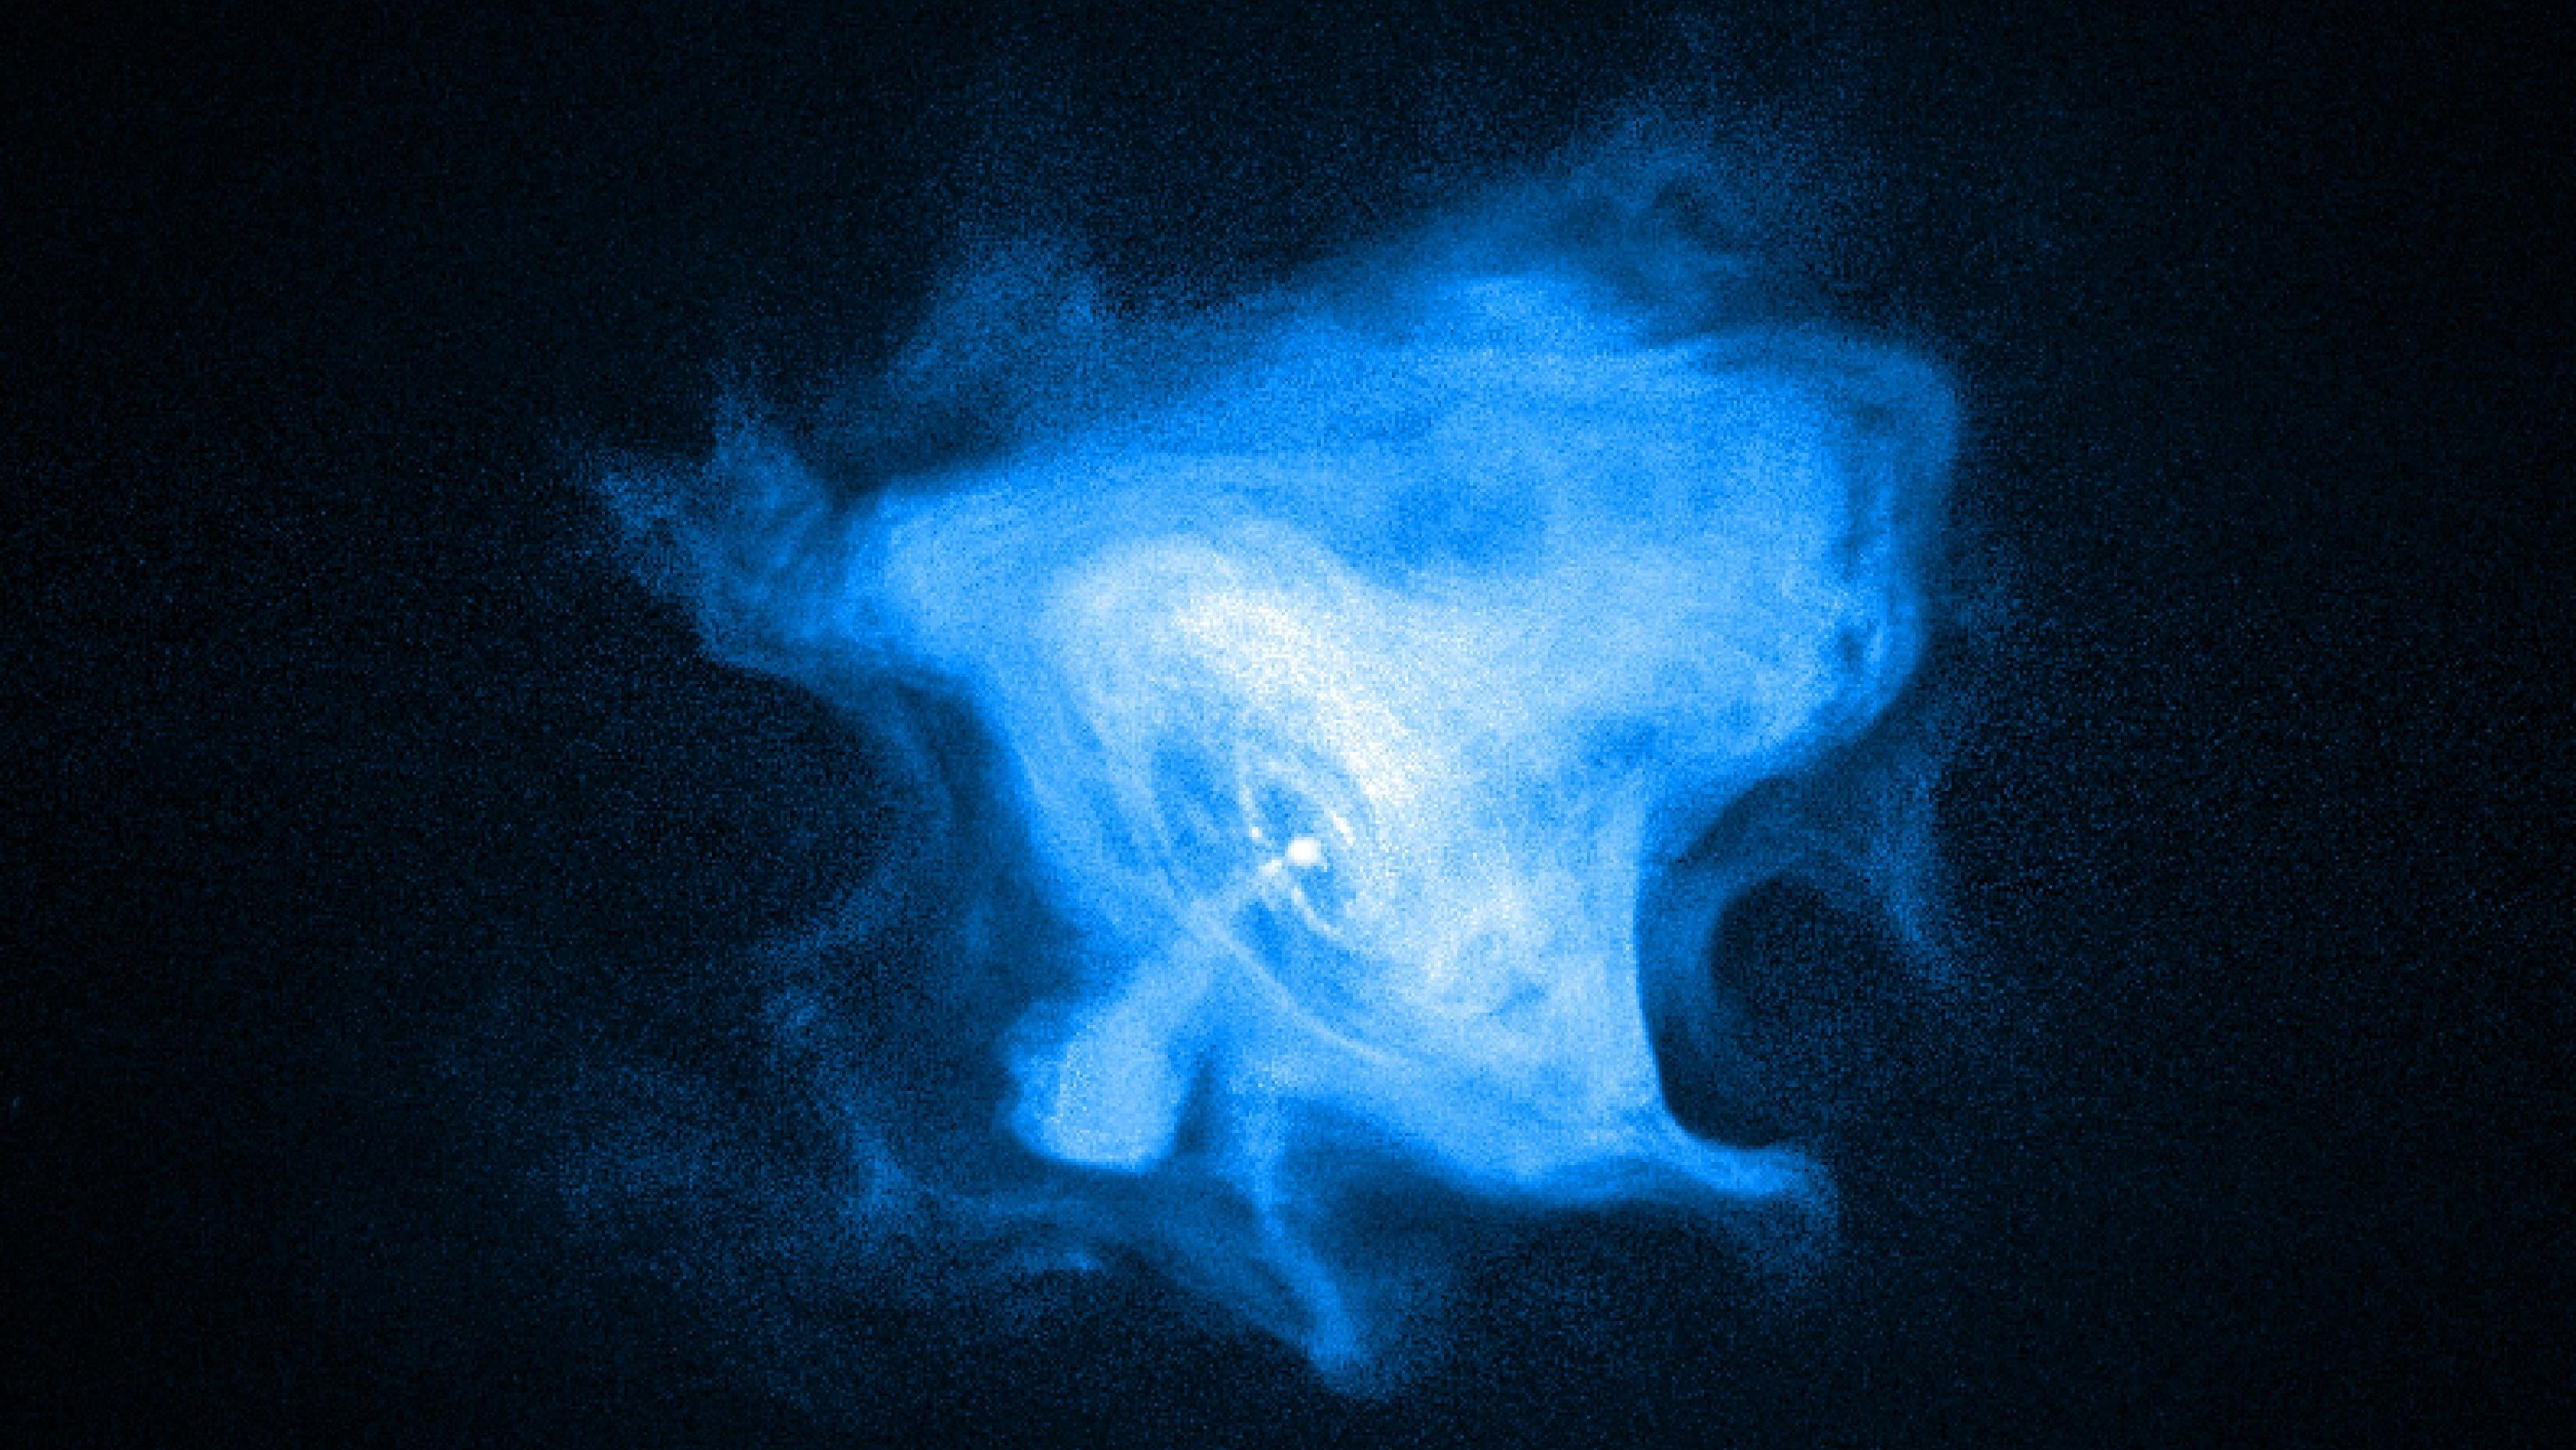 China's 'Monkey King' Dark Matter Satellite Has Produced Some Unusual Results